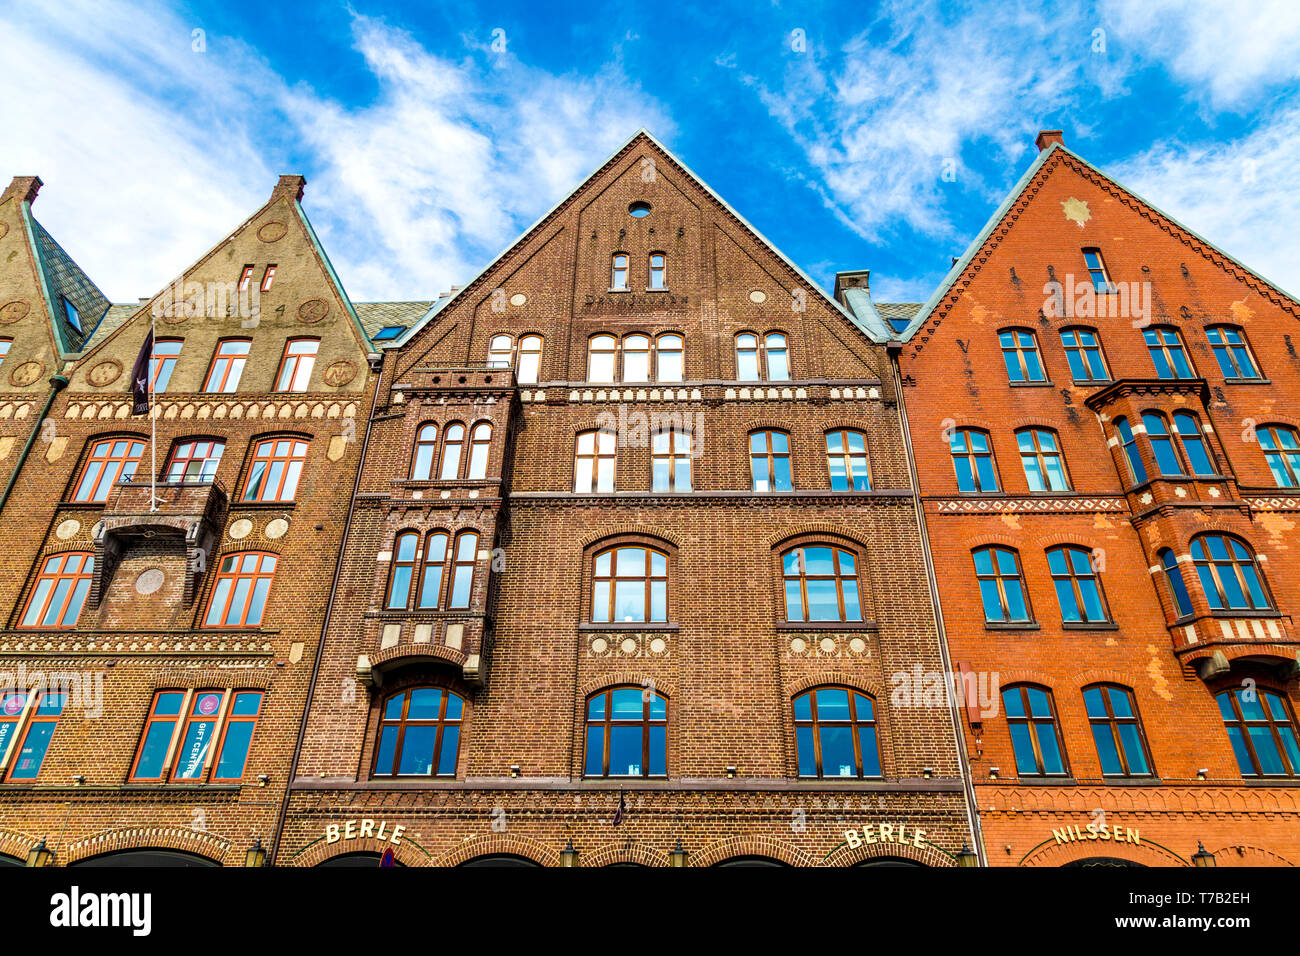 Brick buildings with gables reconstructed to match the historic hanseatic buildings in Bryggen, Bergen, Norway - Stock Image